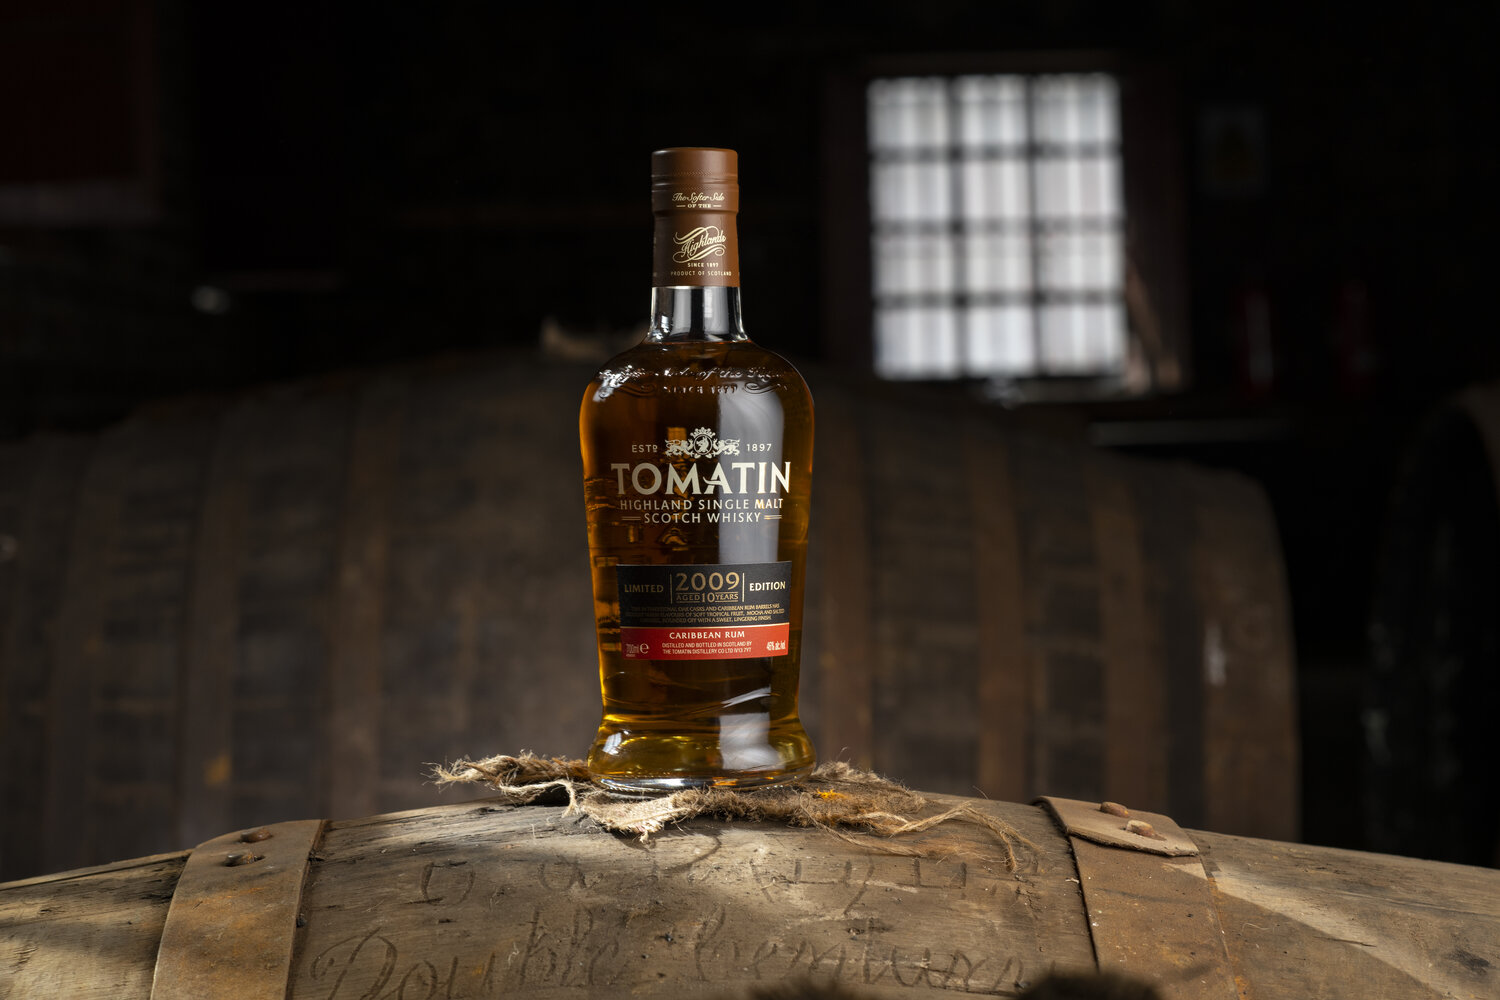 TOMATIN DISTILLERY RELEASE TWO NEW LIMITED EXPRESSIONS — TOMATIN